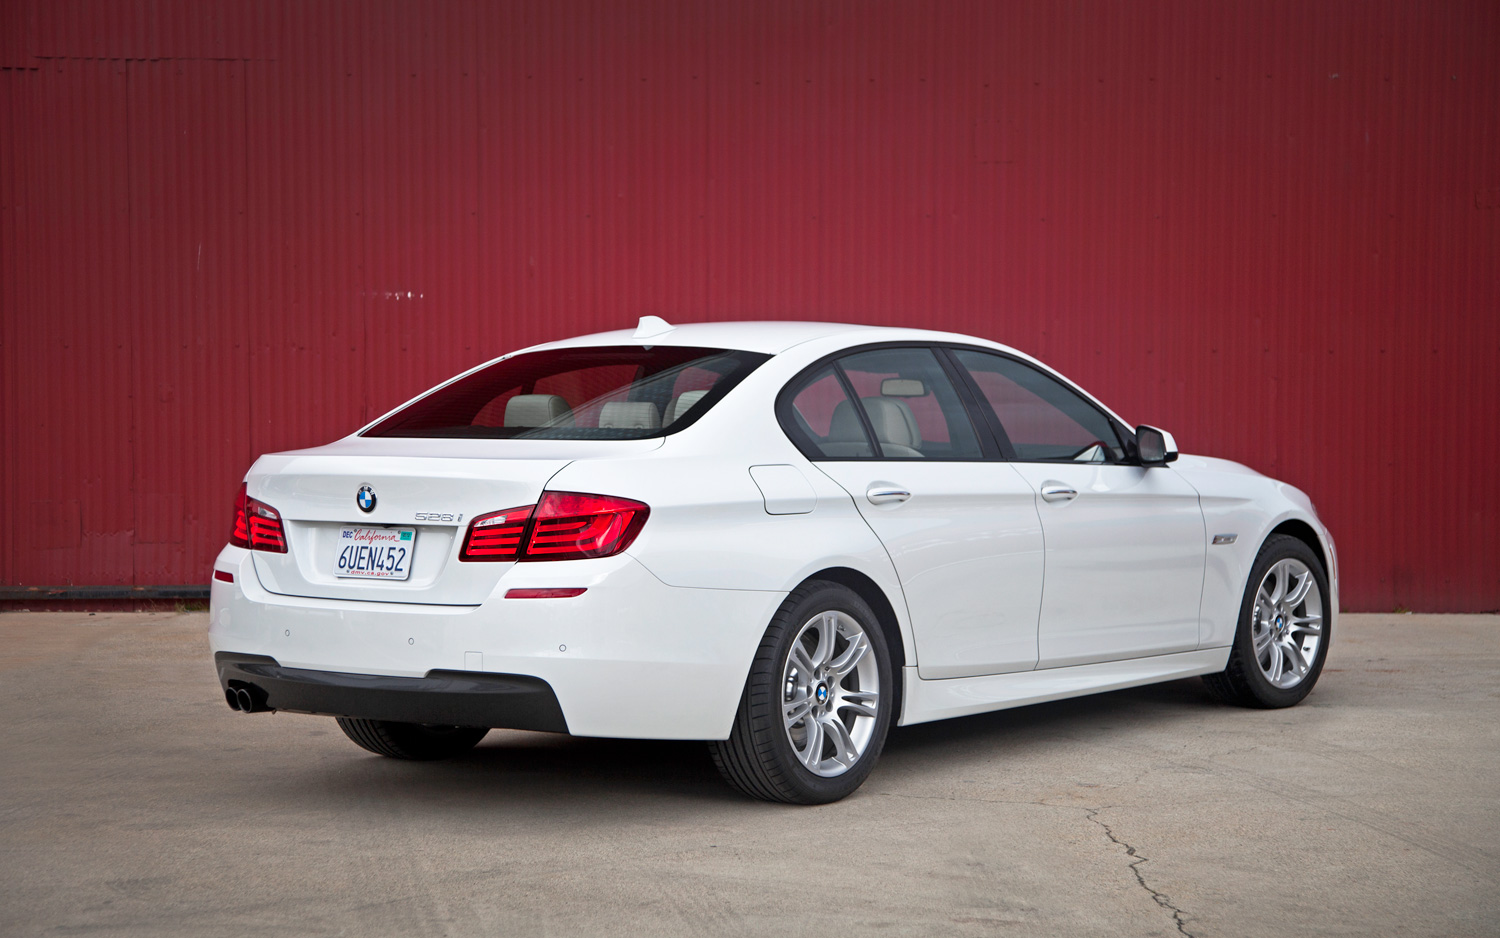 Bmw 528 2012 Review Amazing Pictures And Images Look